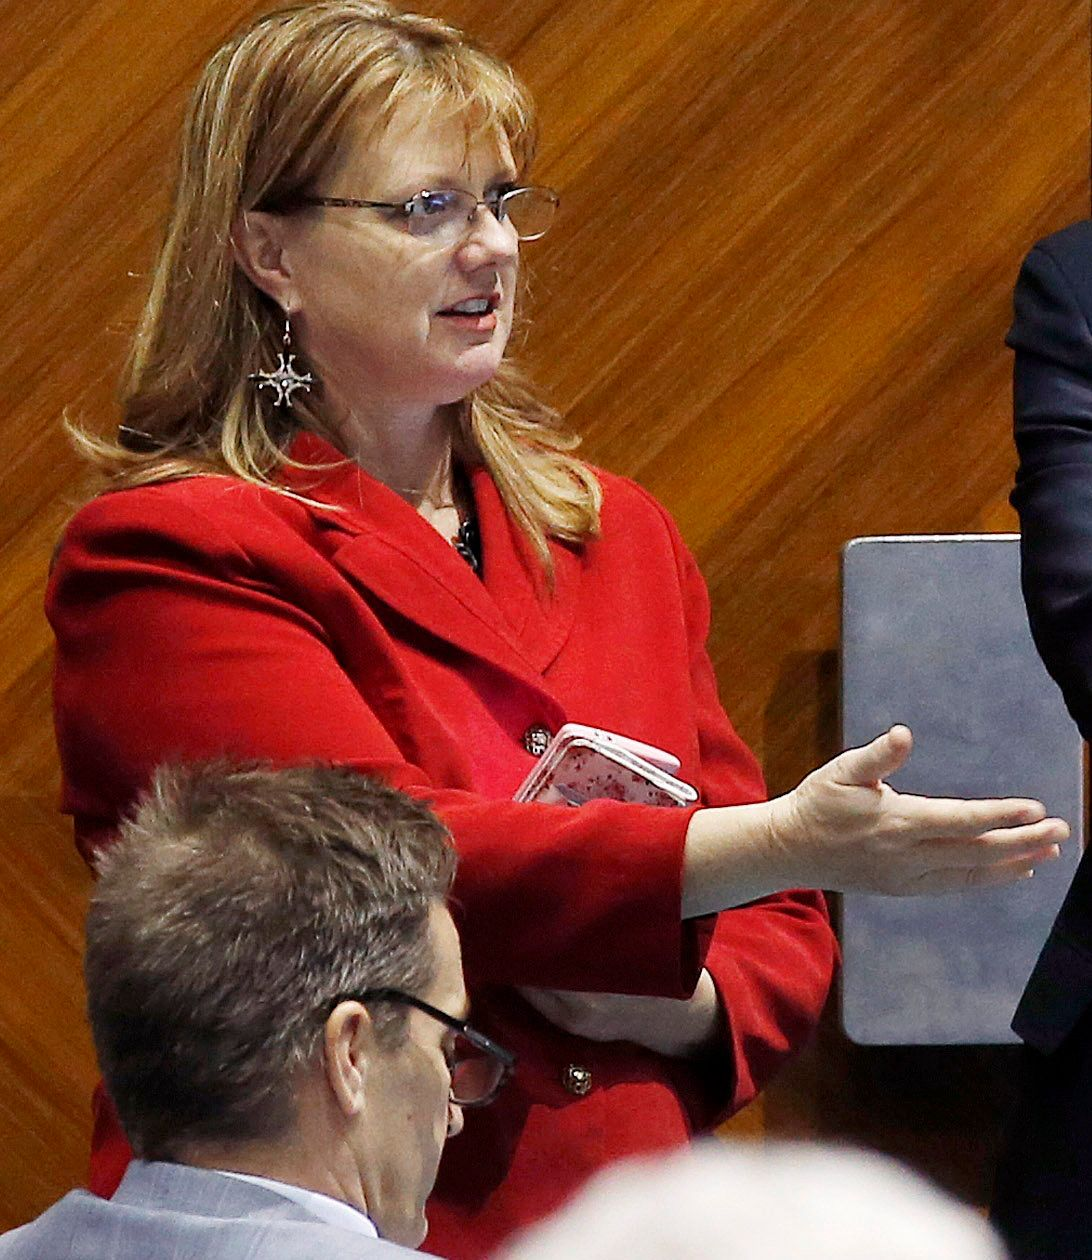 GOP Arizona Lawmaker Claims Vaccinations Are 'Communist'